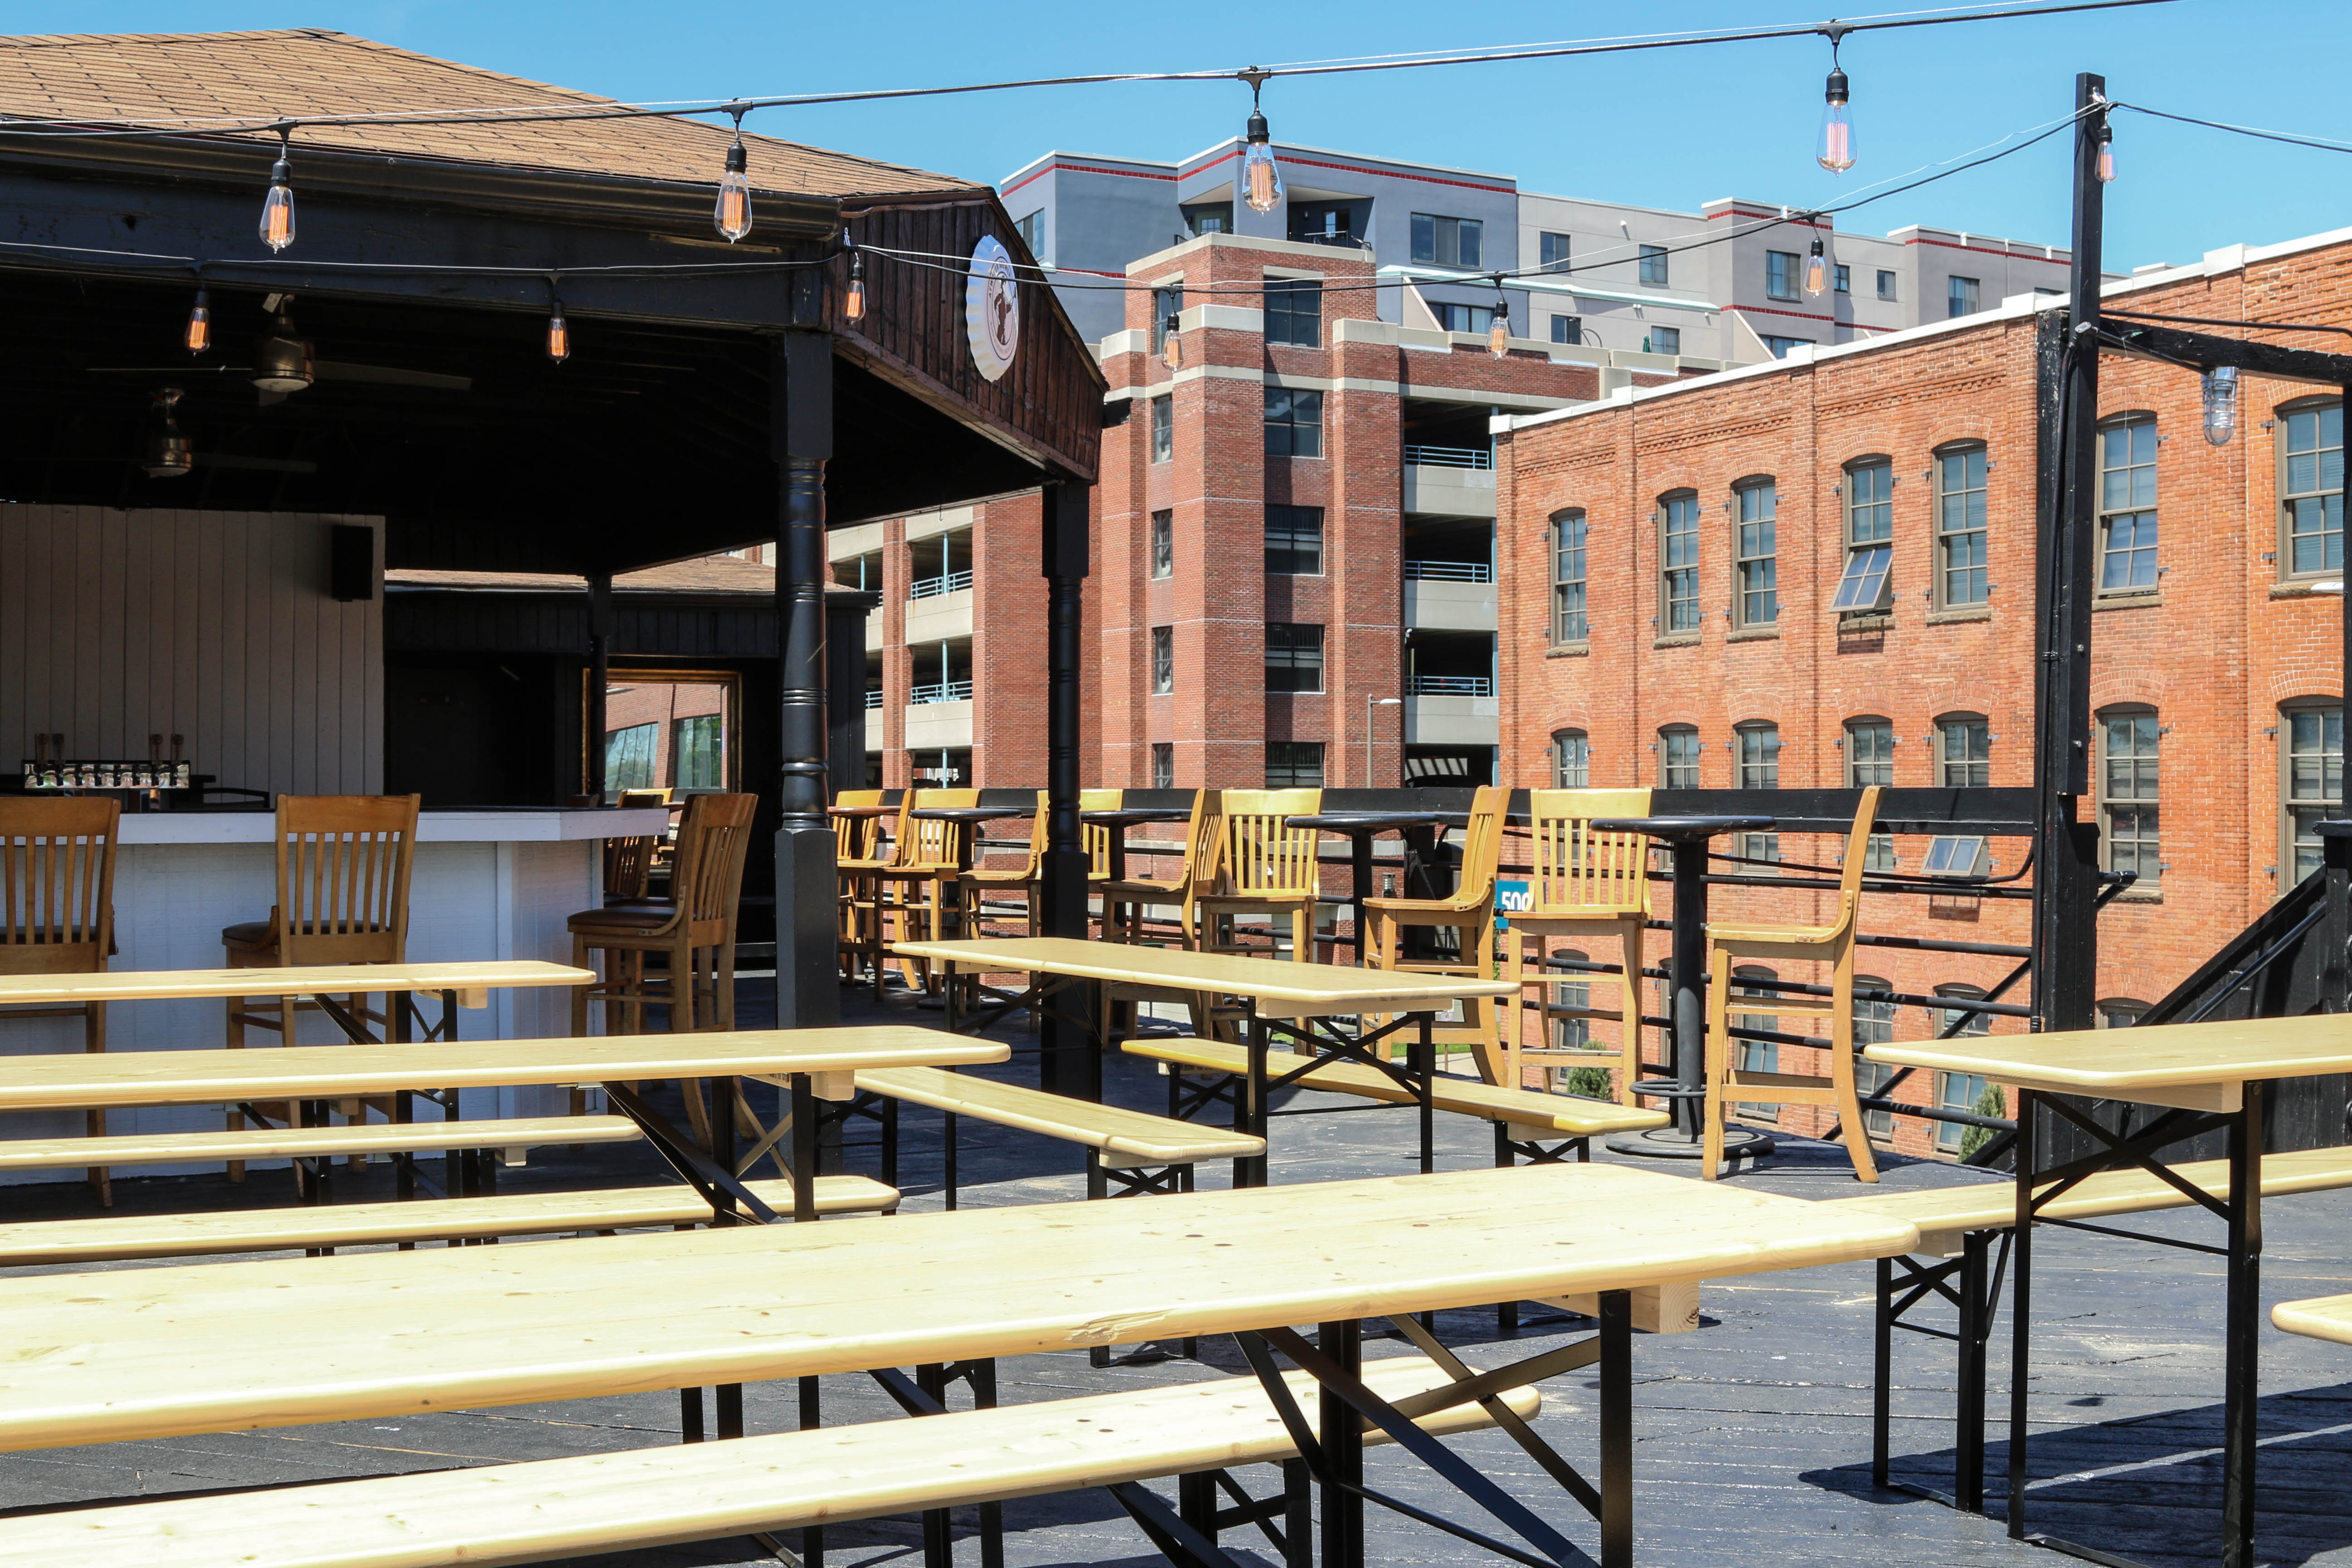 Several long wooden picnic tables accompanied by benches atop a rooftop that has a bar with chairs in the background. Two midrise buildings are in view.